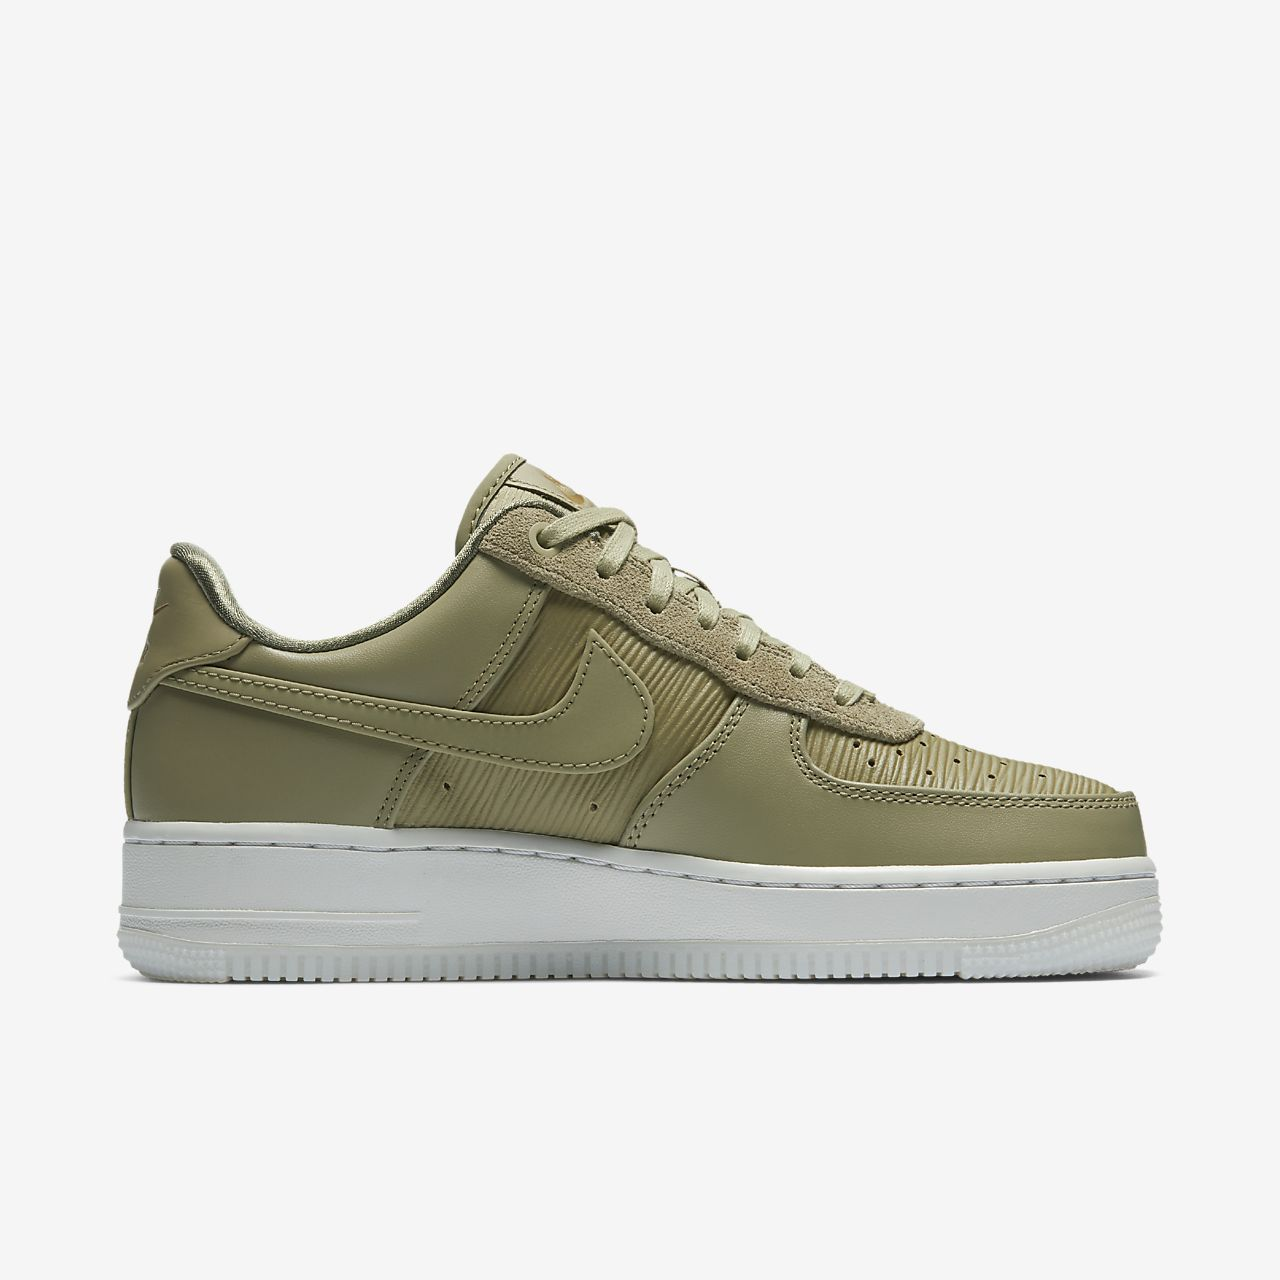 New Nike Air force 1 07 Lx Green Trainers for Women Sale